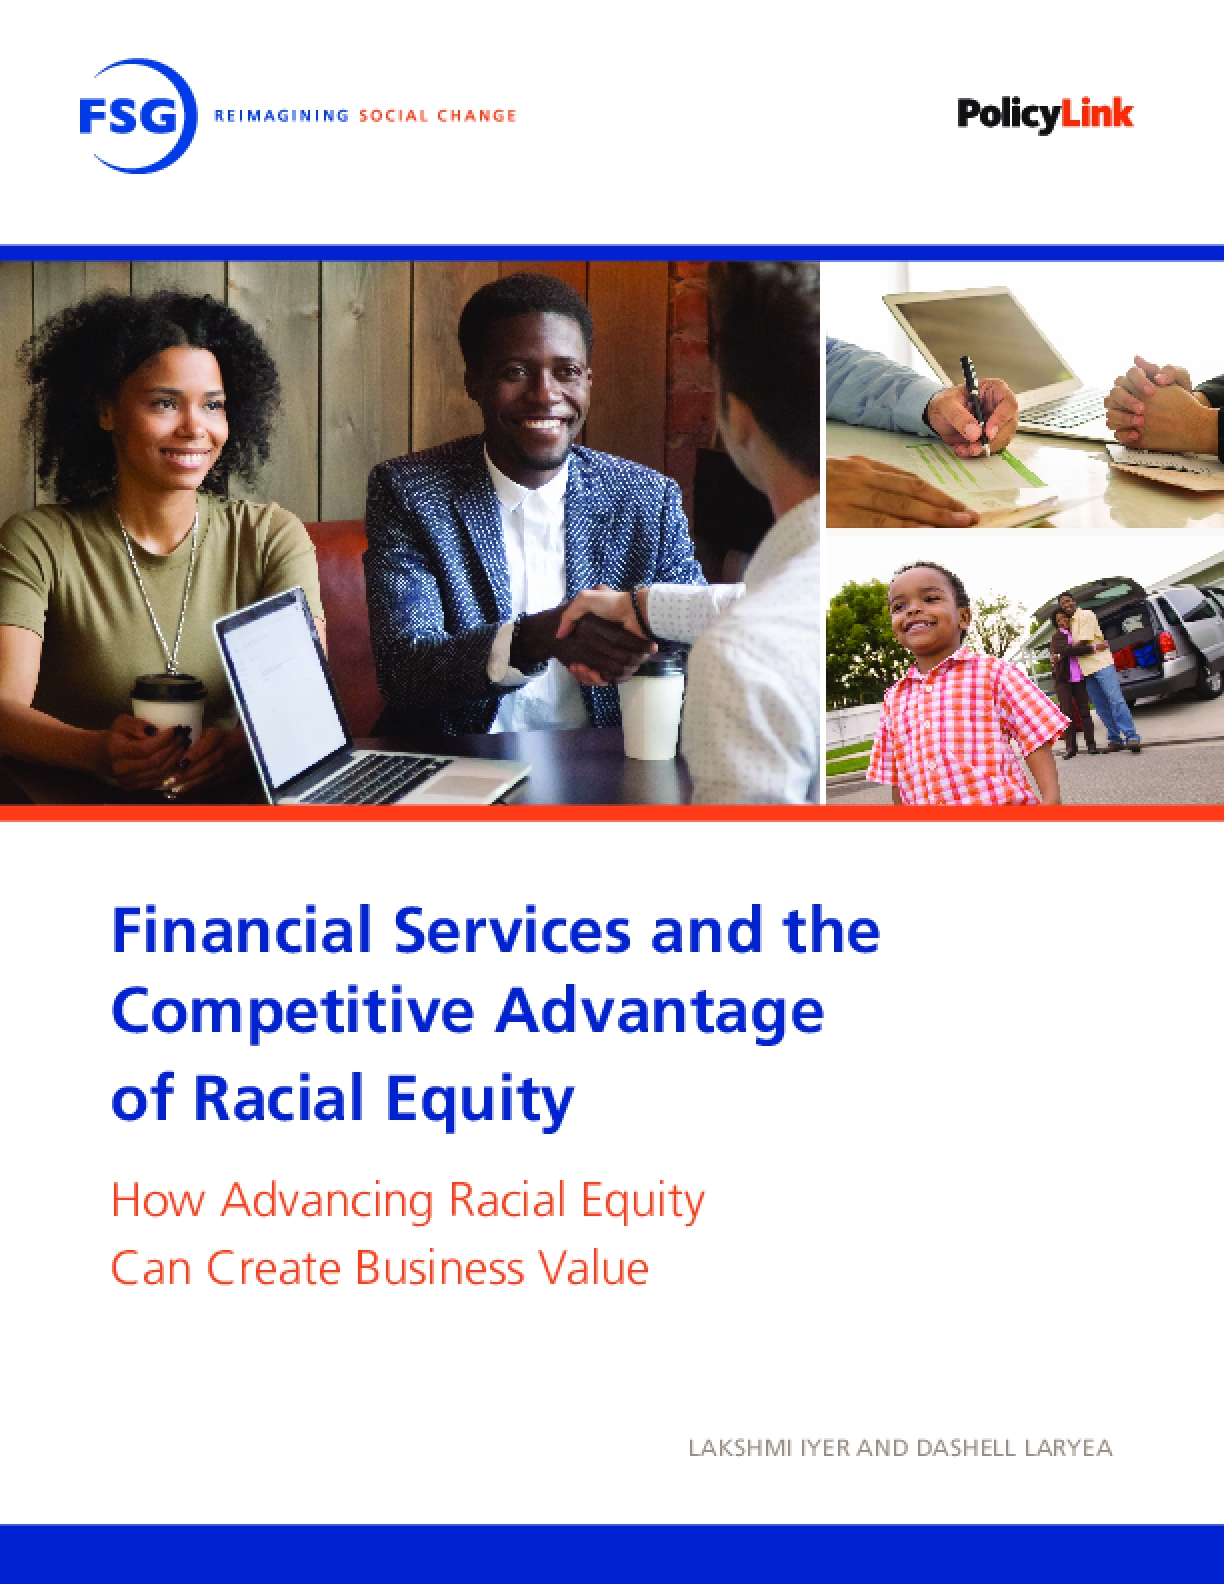 Financial Services and the Competitive Advantage of Racial Equity